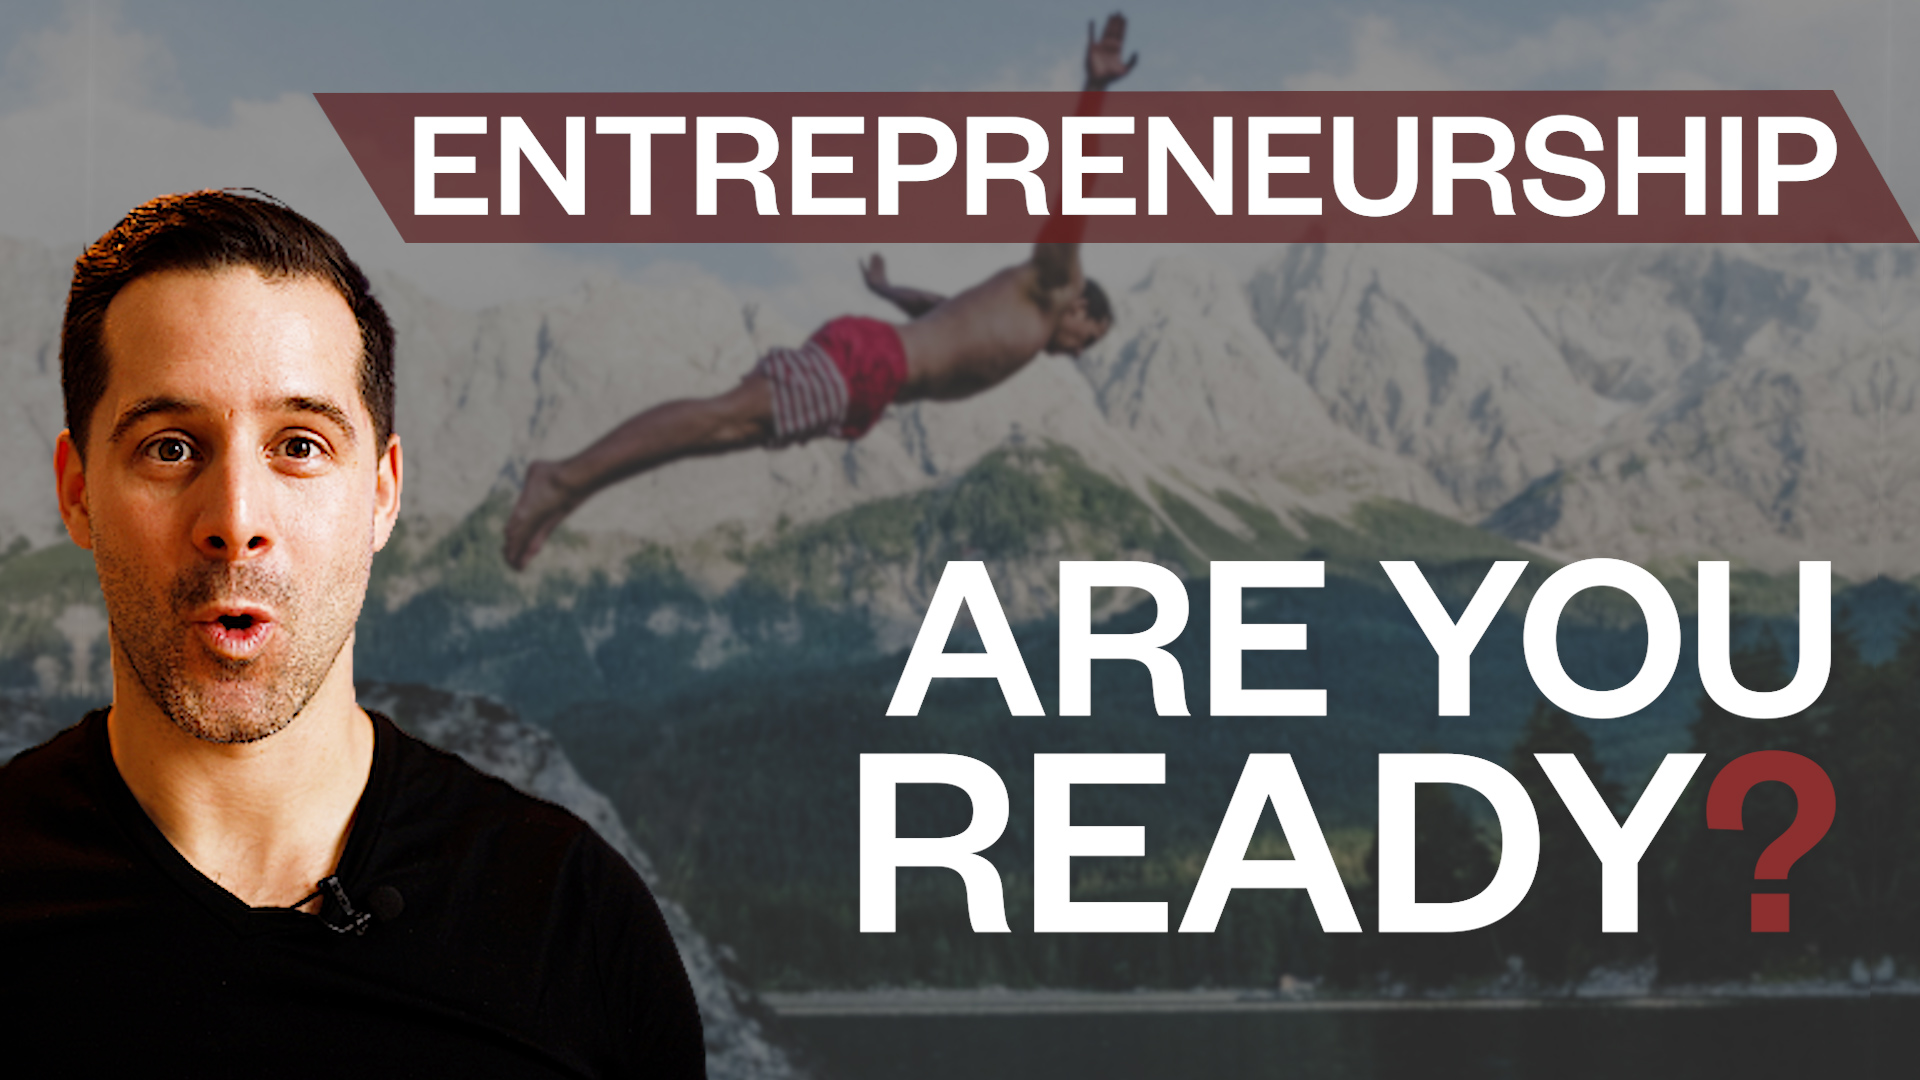 Leave Your Job - Become An Entrepreneur